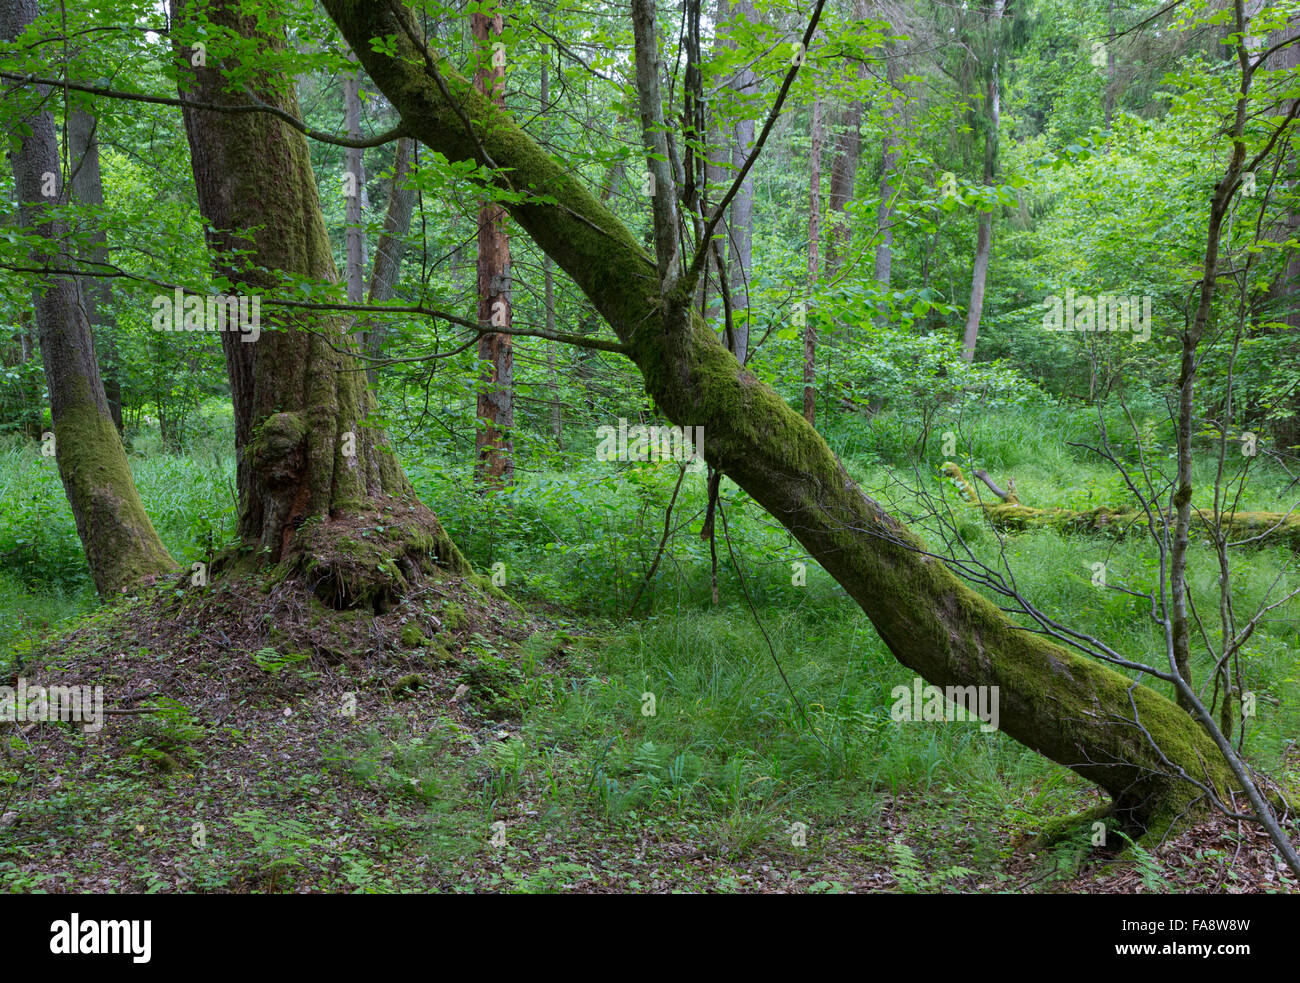 Old bent hornbeam trees in autumnal landscape of primeval deciduous stand of Bialowieza Forest - Stock Image